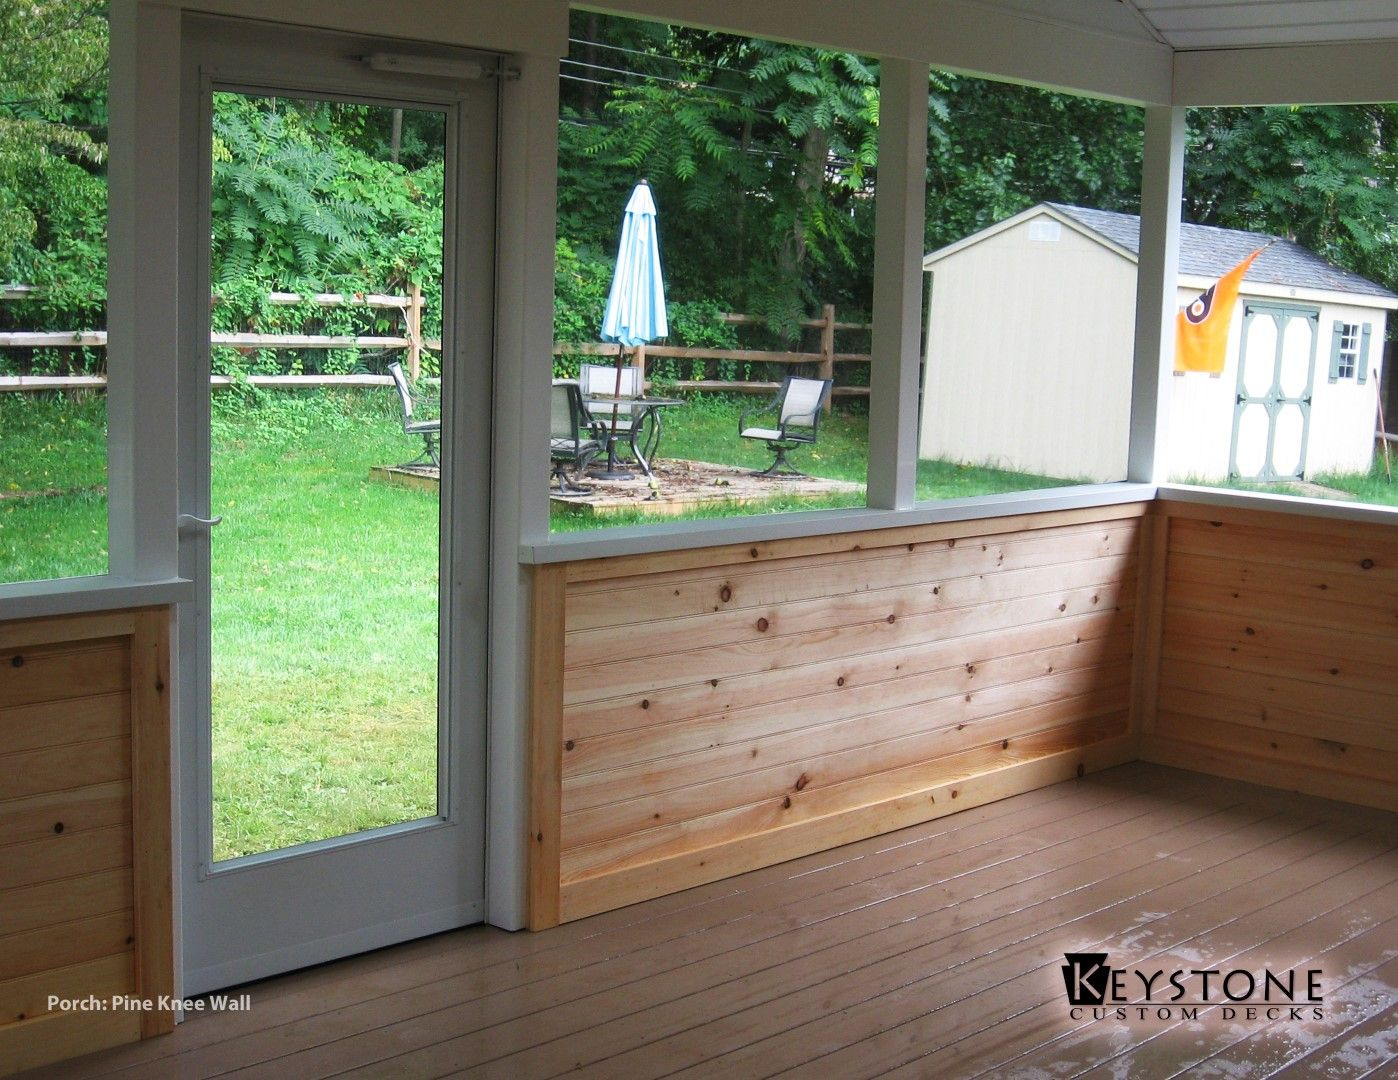 Custom Closed Porch With A Finished Pine Knee Wall Built